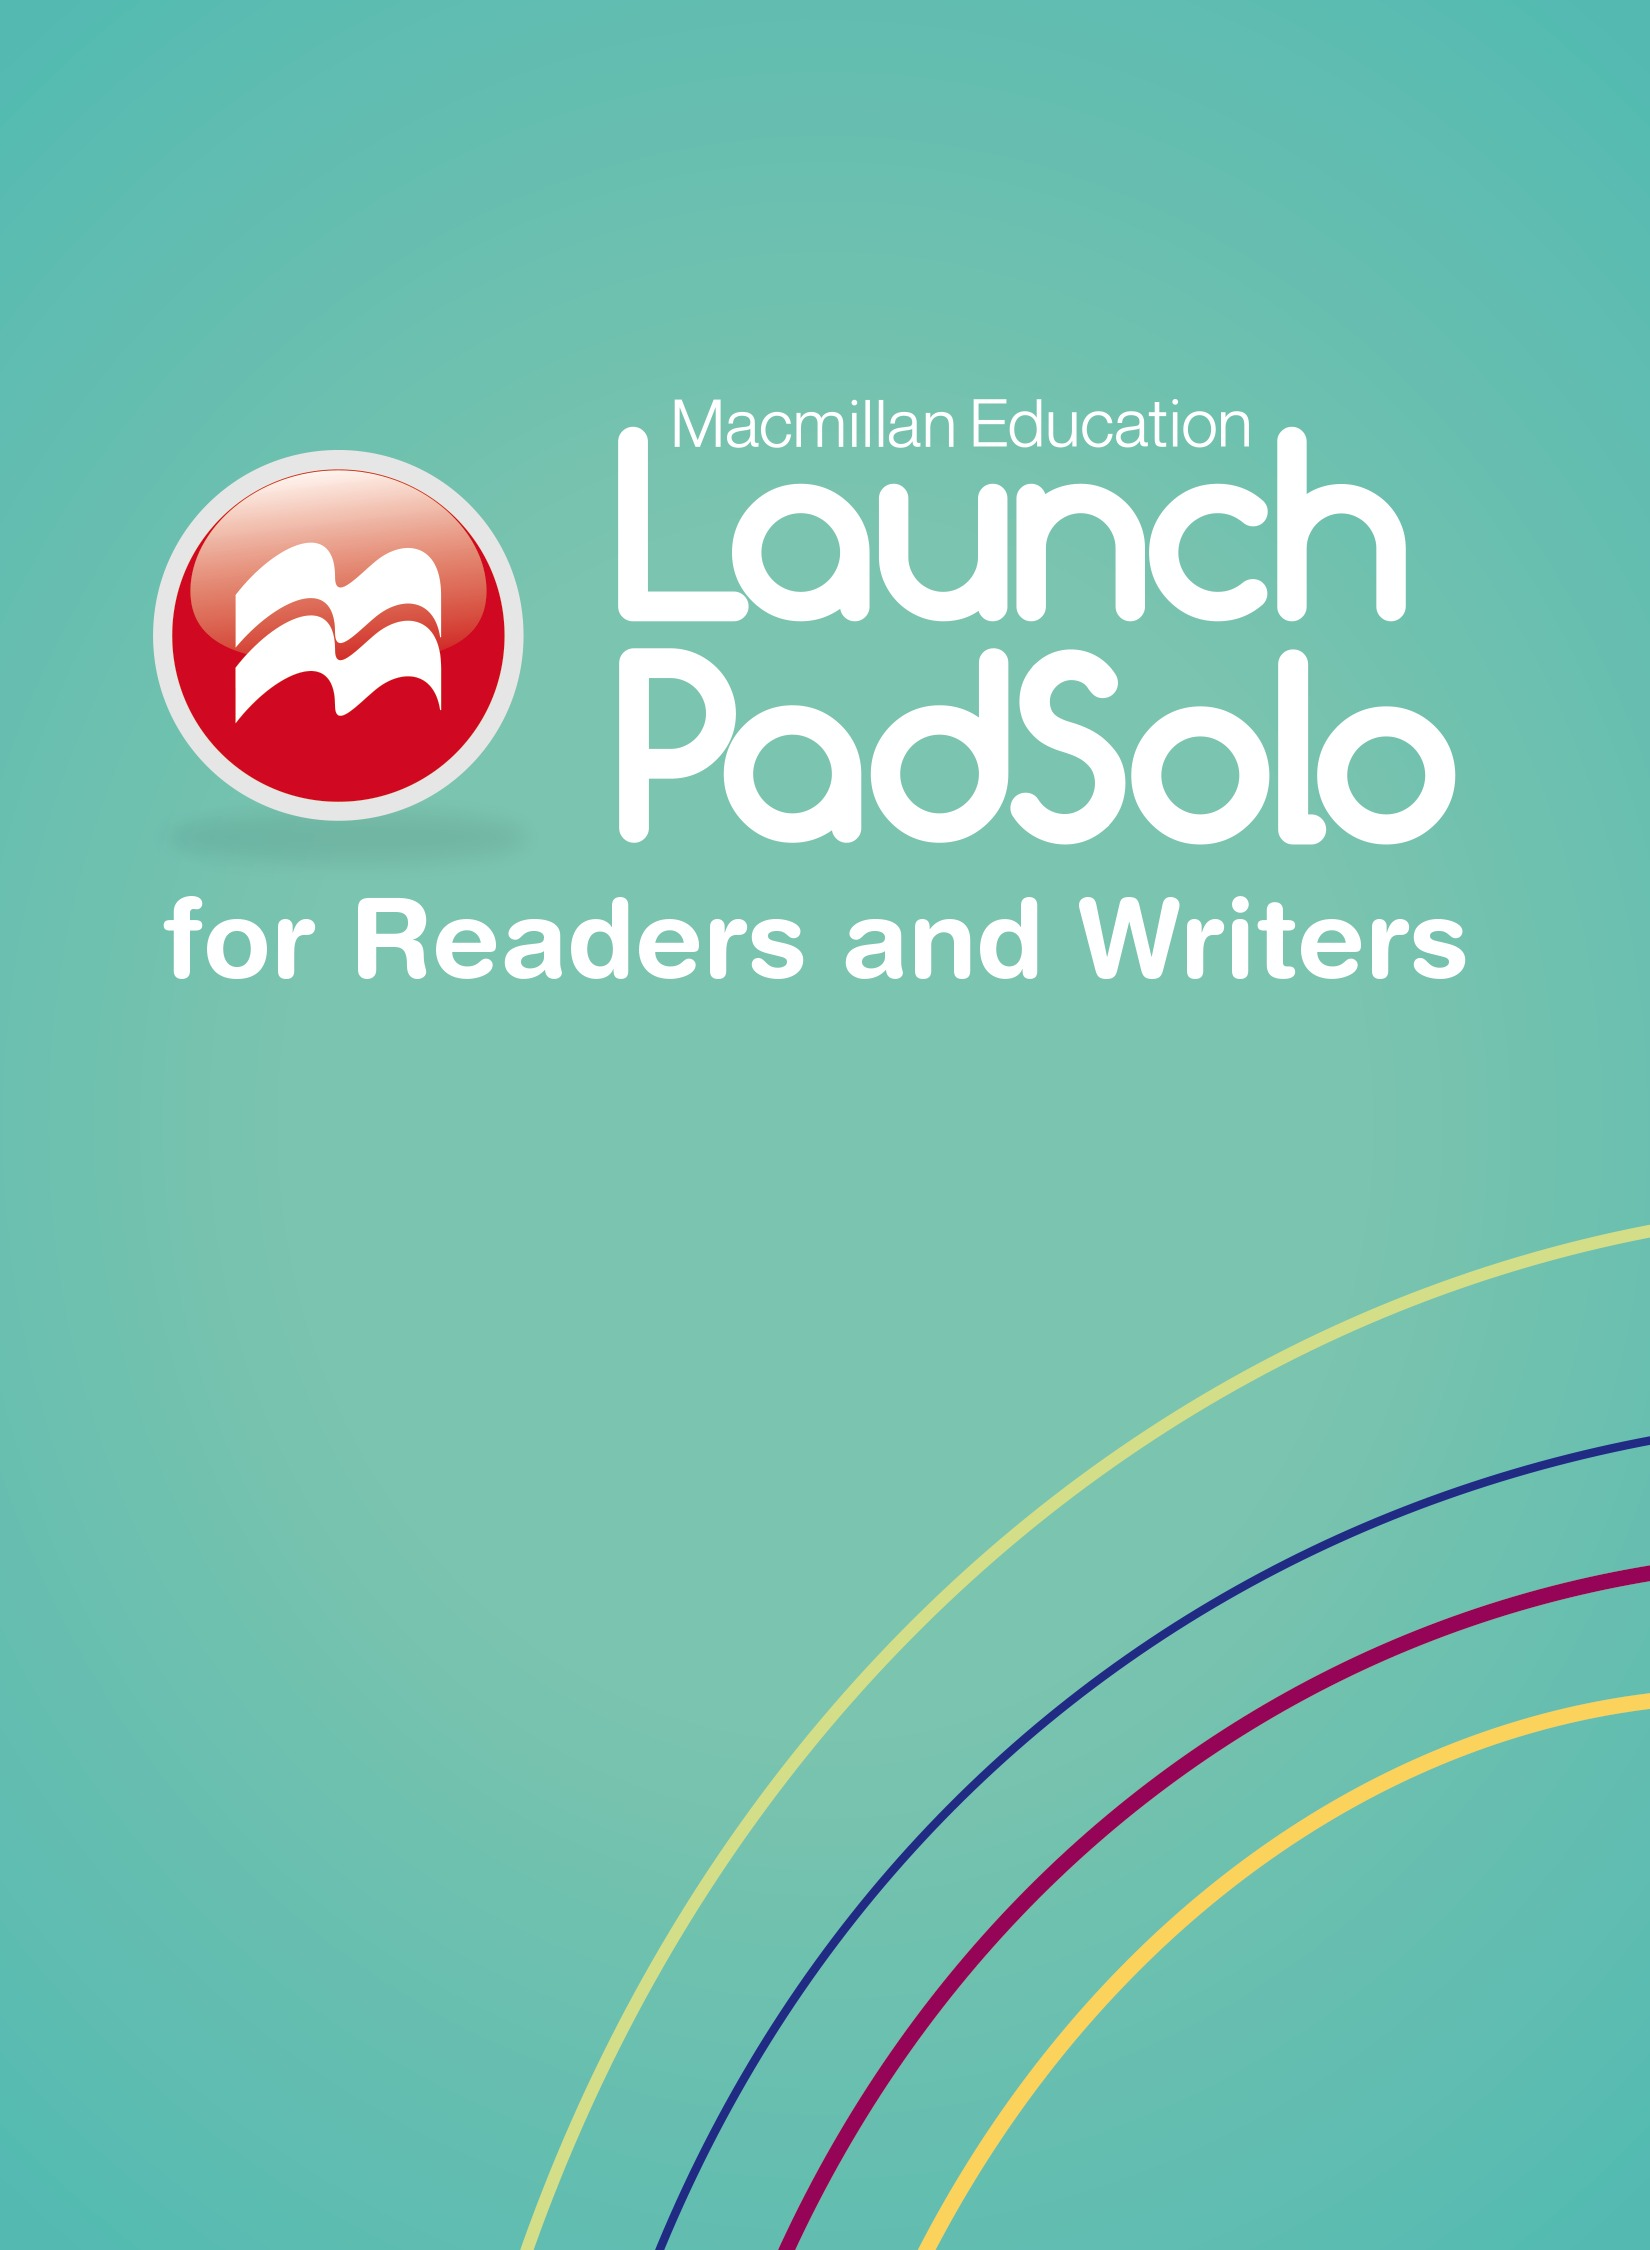 Keys for writers 7th edition insight ebook best deal choice image launchpad solo for readers and writers six month access download image fandeluxe choice image fandeluxe Images